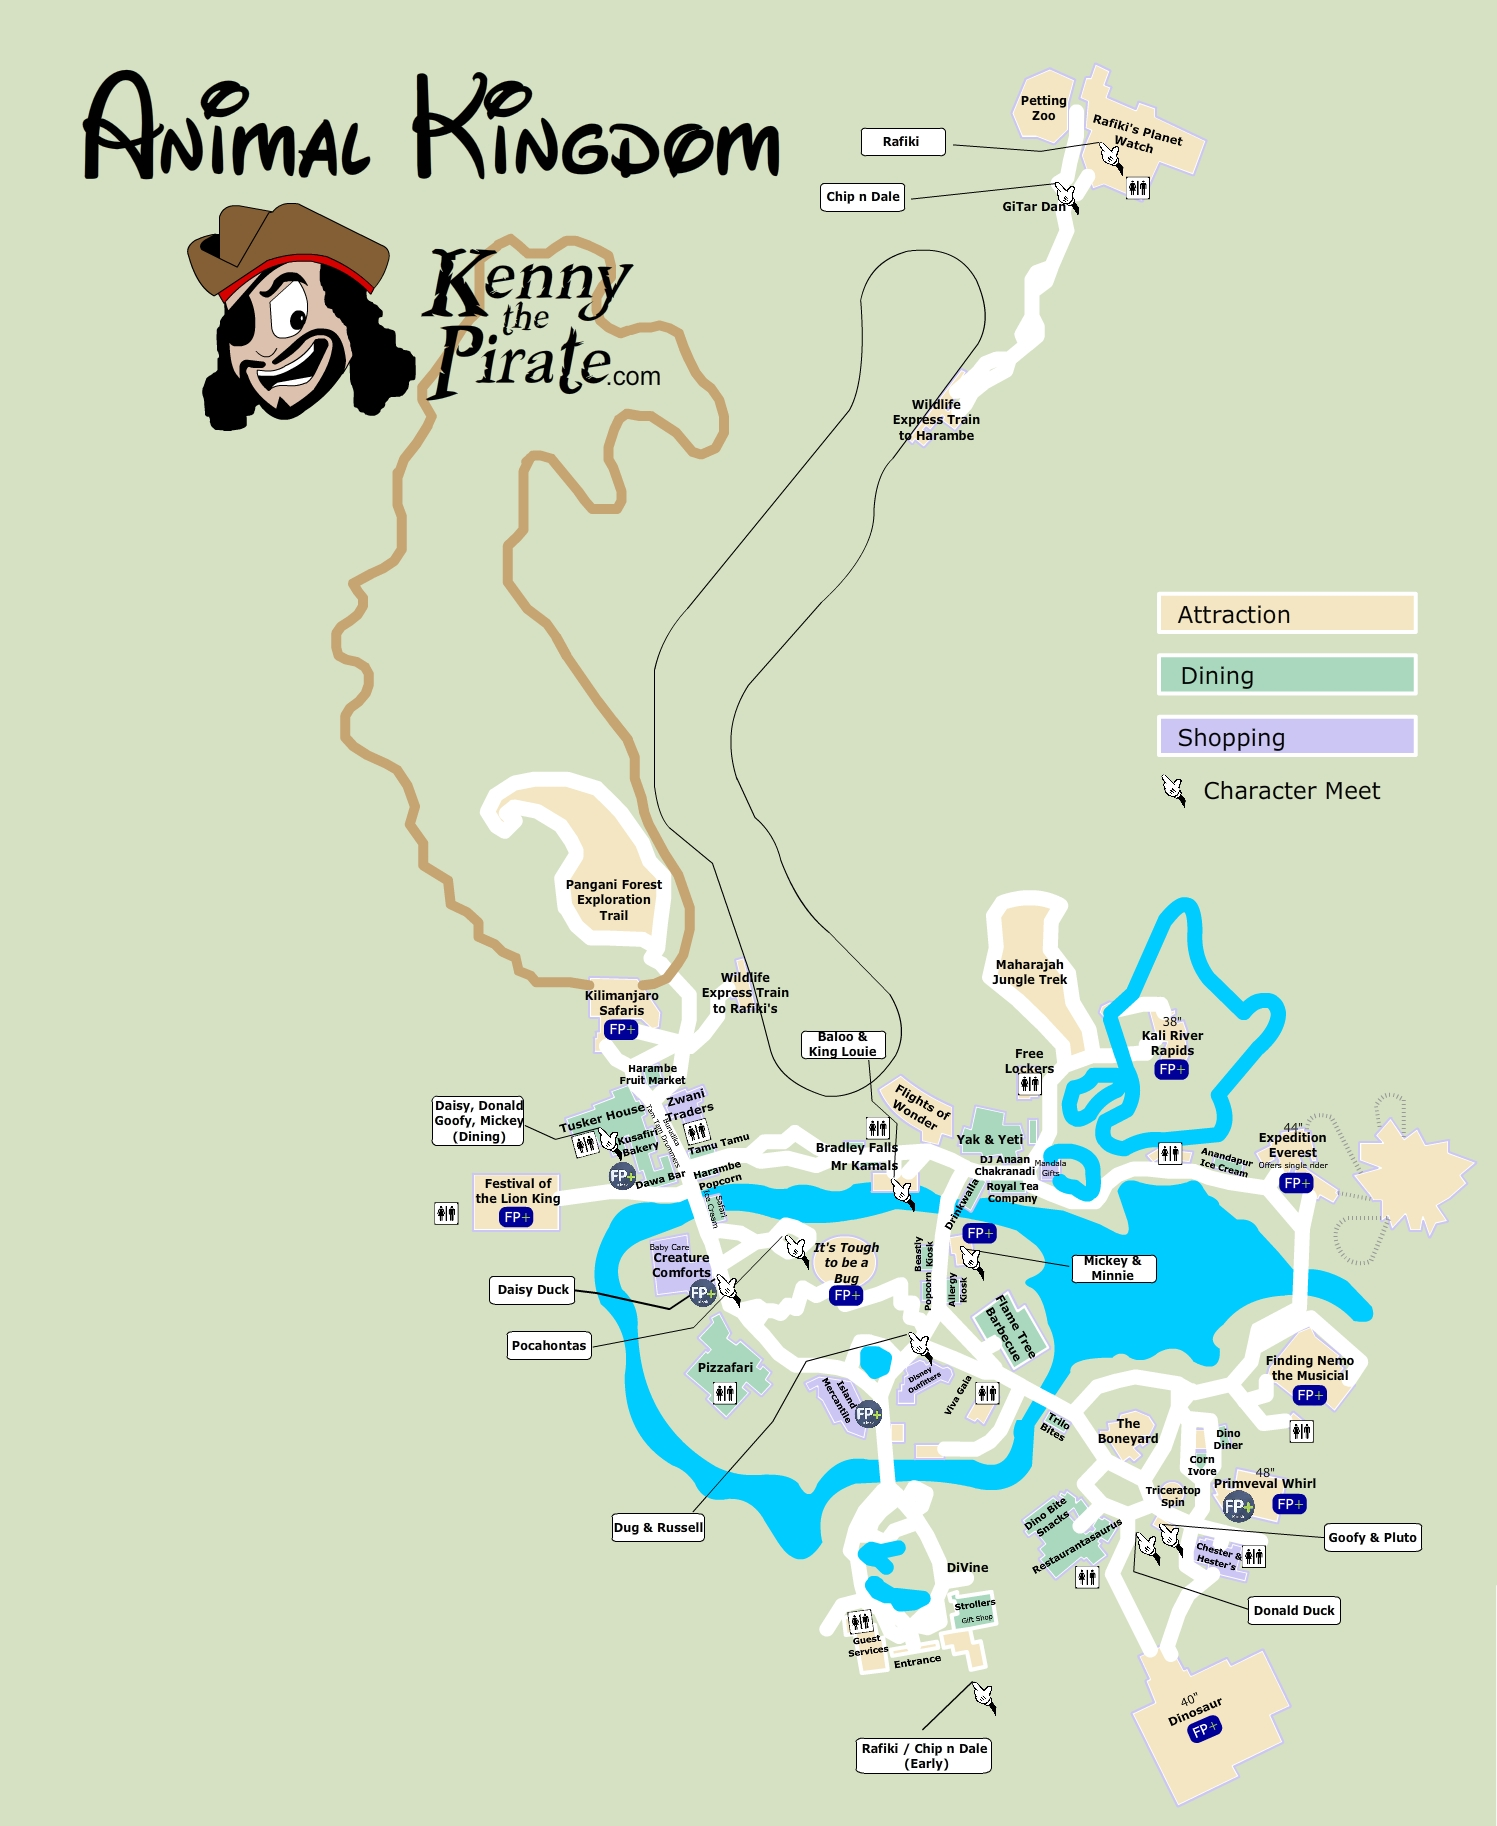 Animal Kingdom Character Location Map KennythePirate